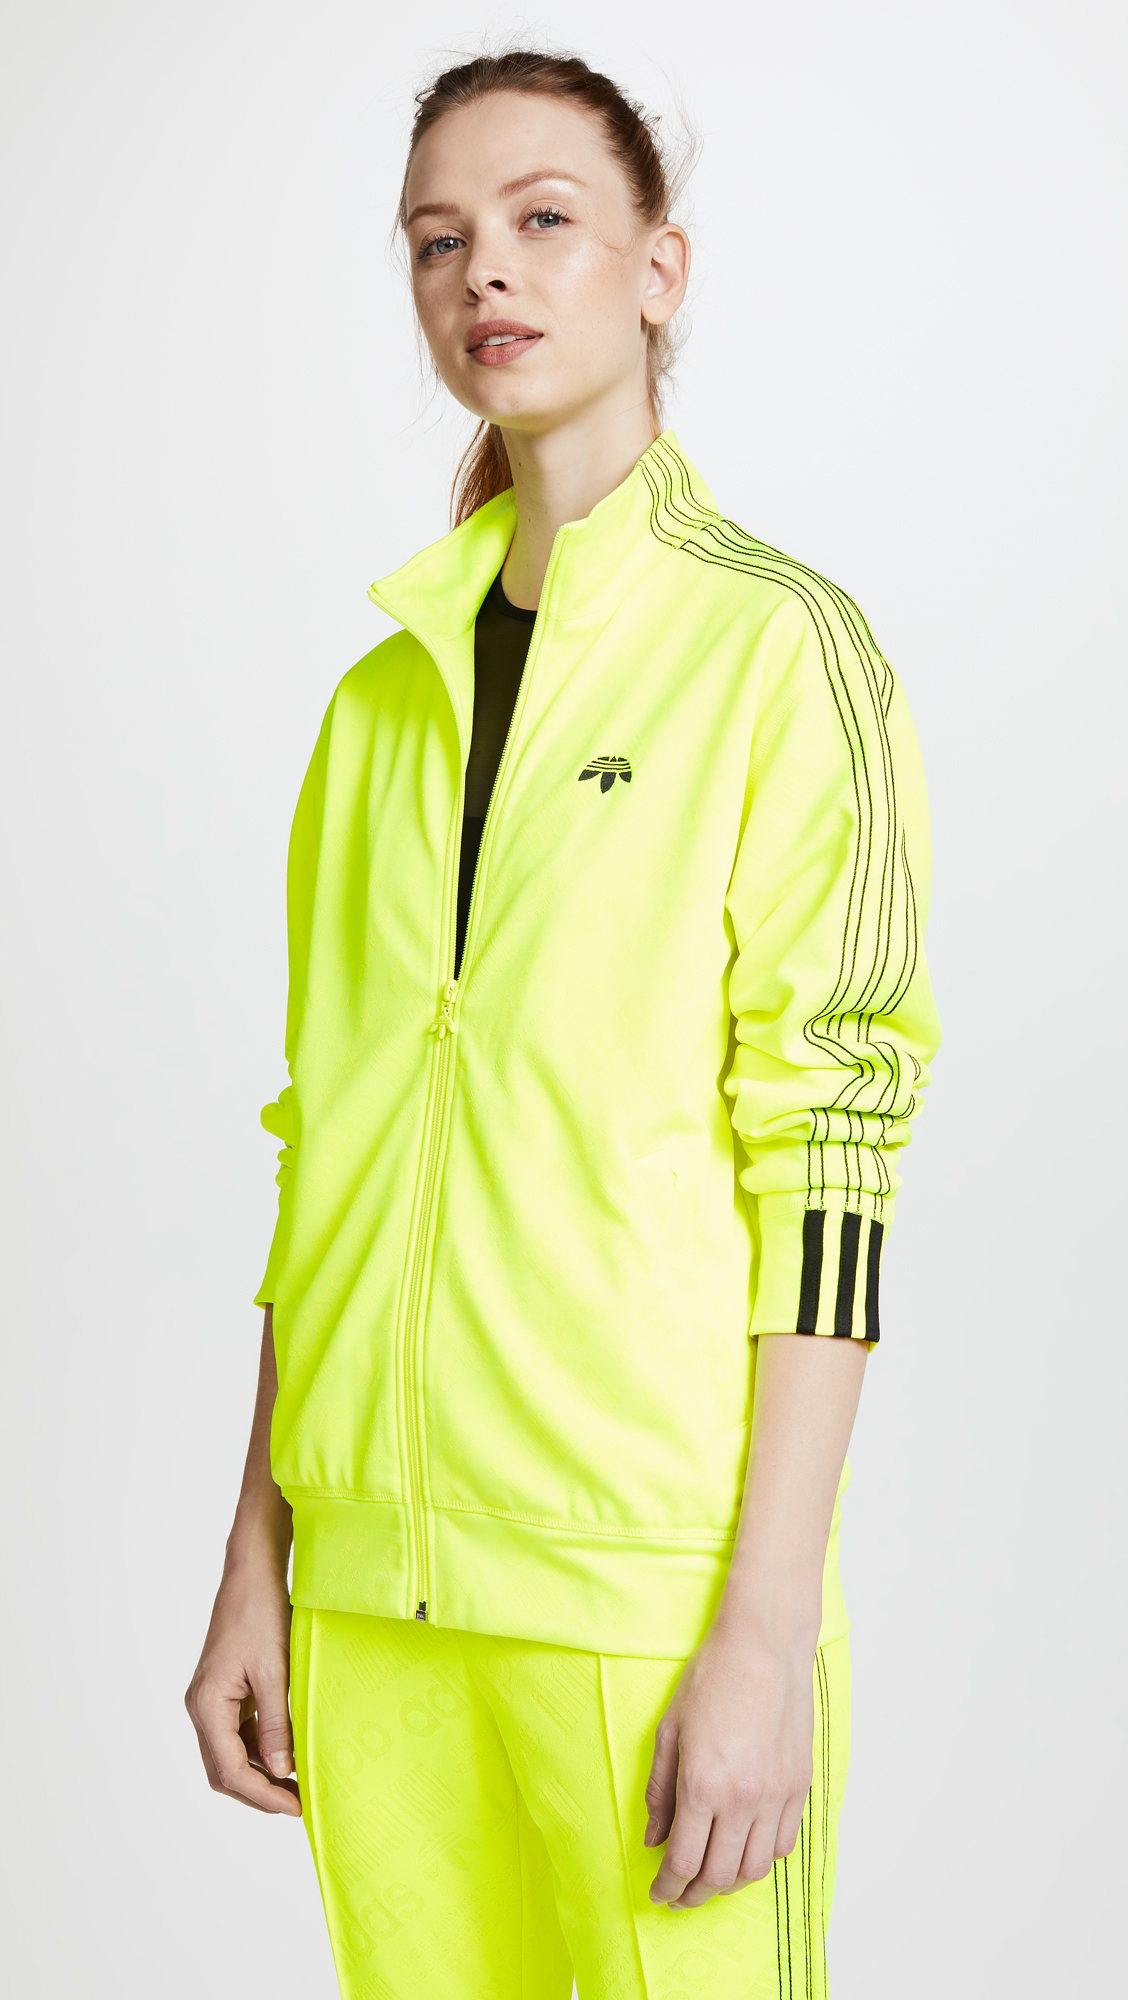 b14f118010a adidas Originals by Alexander Wang AW Jacquard Zip Up